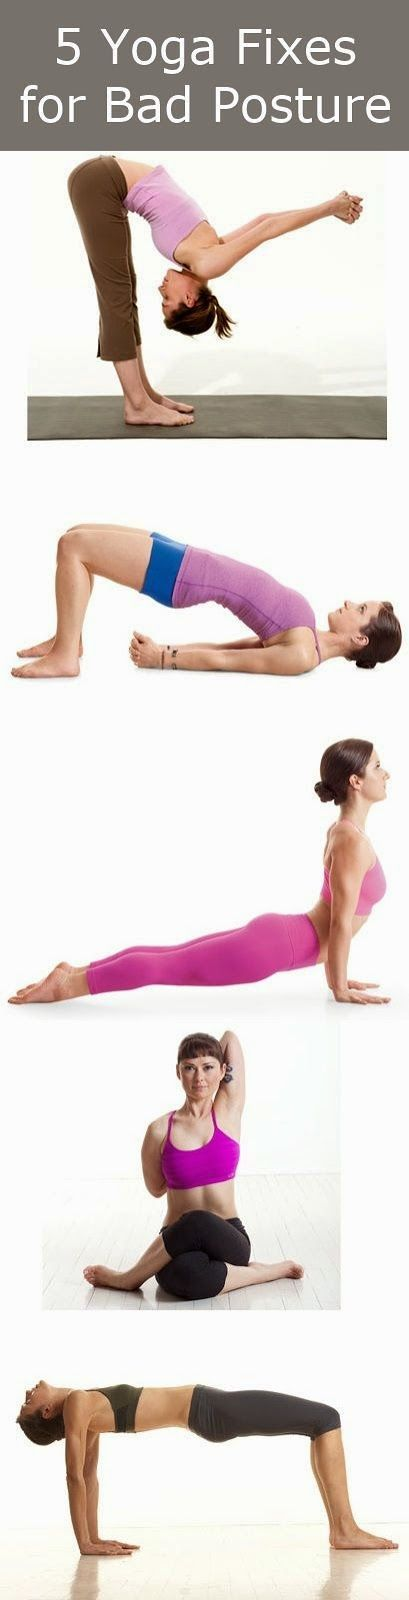 5 Yoga Fixes For Bad Posture | Cute Health